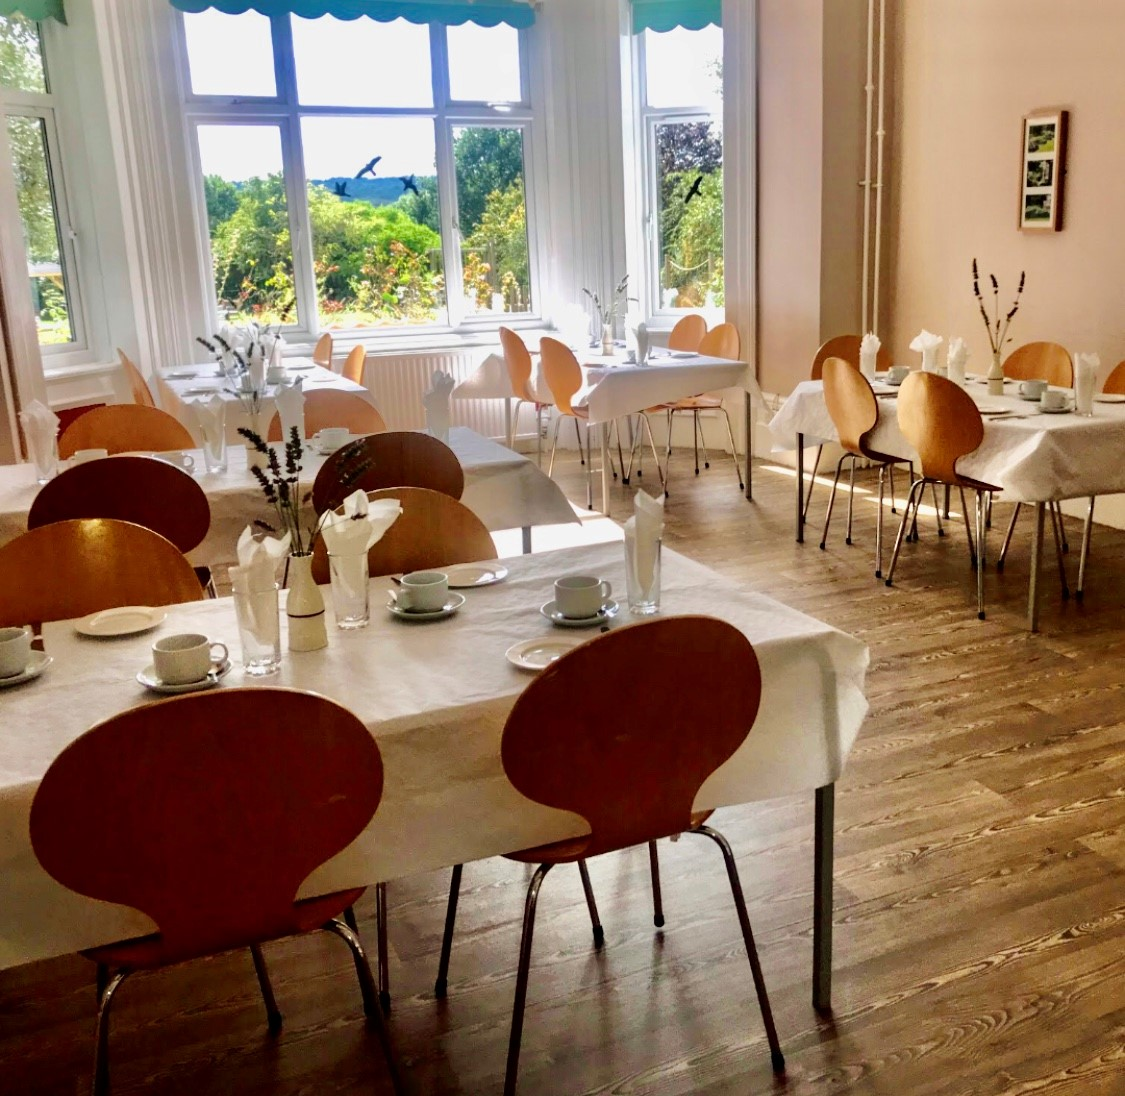 Dining room with tables and chairs set up for afternoon tea